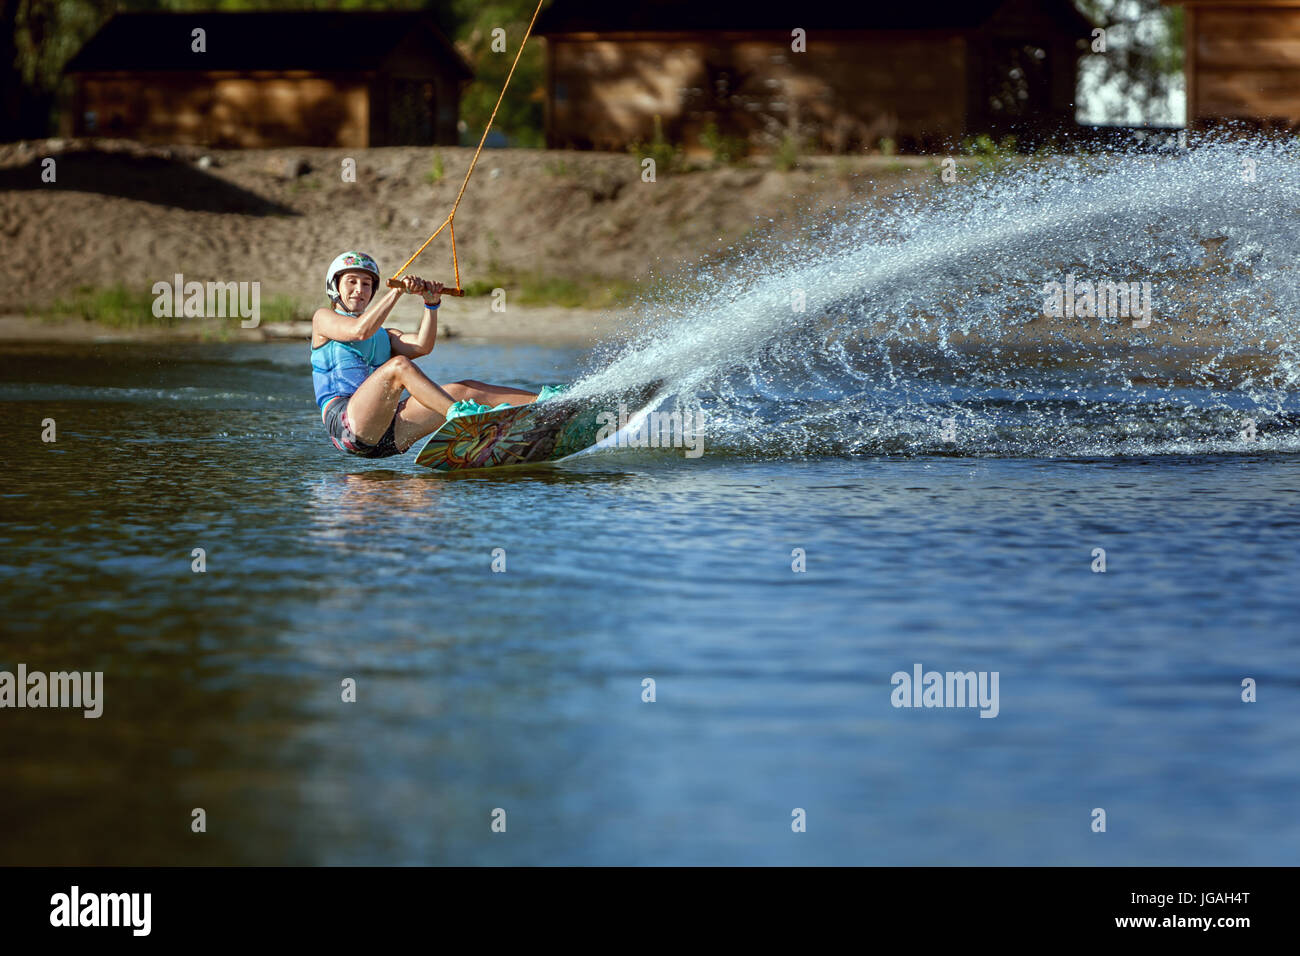 Waking on wakeboarding summer sport, a woman trains. - Stock Image